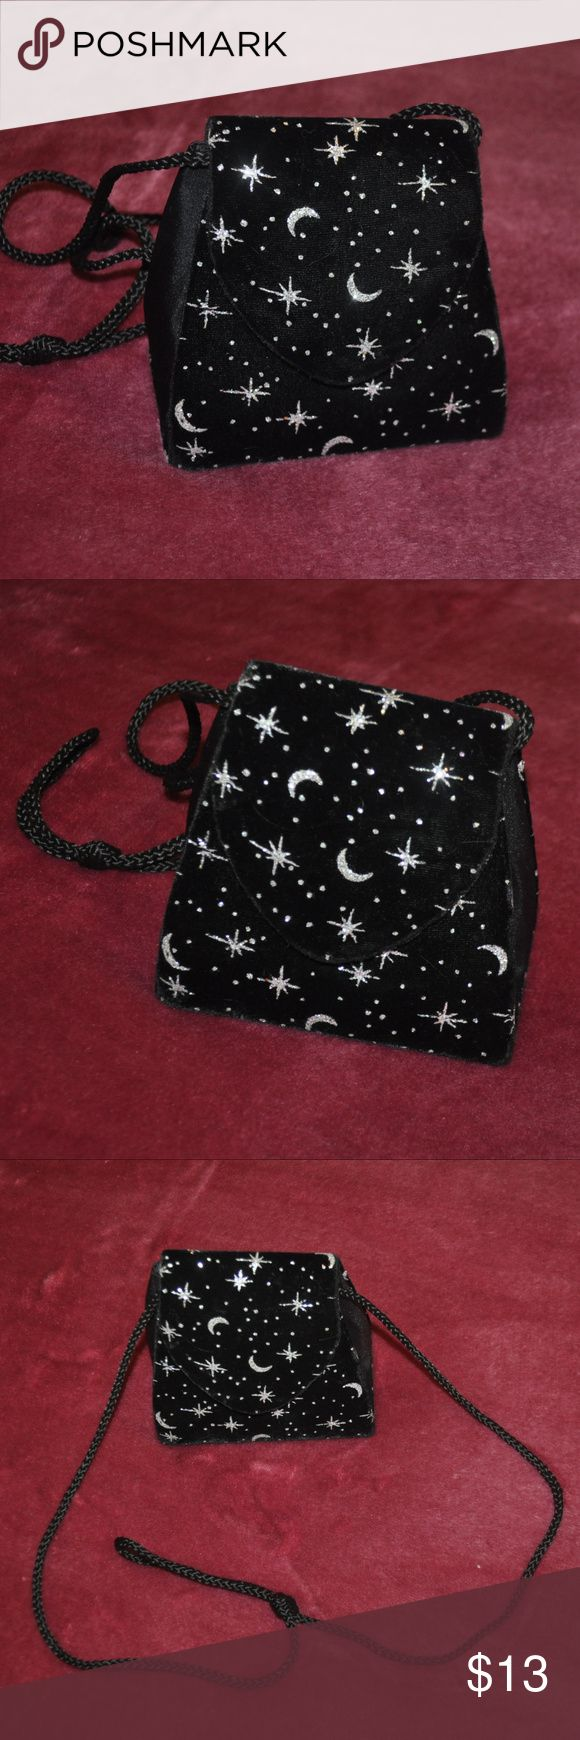 Mini Velvet Moon & Stars Bag CUTE! snap button closure - silver sparkle moons and stars on black velvety fabric - black braided strap has a bit of what looks like makeup on the inside (please see photos) tags: witchy witchcraft witch craft goth gothic night casual date day summer style fashion adorable girly girl girls women womens occult vamp punk rock fun party small little size trendy trends trend wallet purse bags detail glittery glitter sparkly sparkles shiny shine sky cosmic galaxy